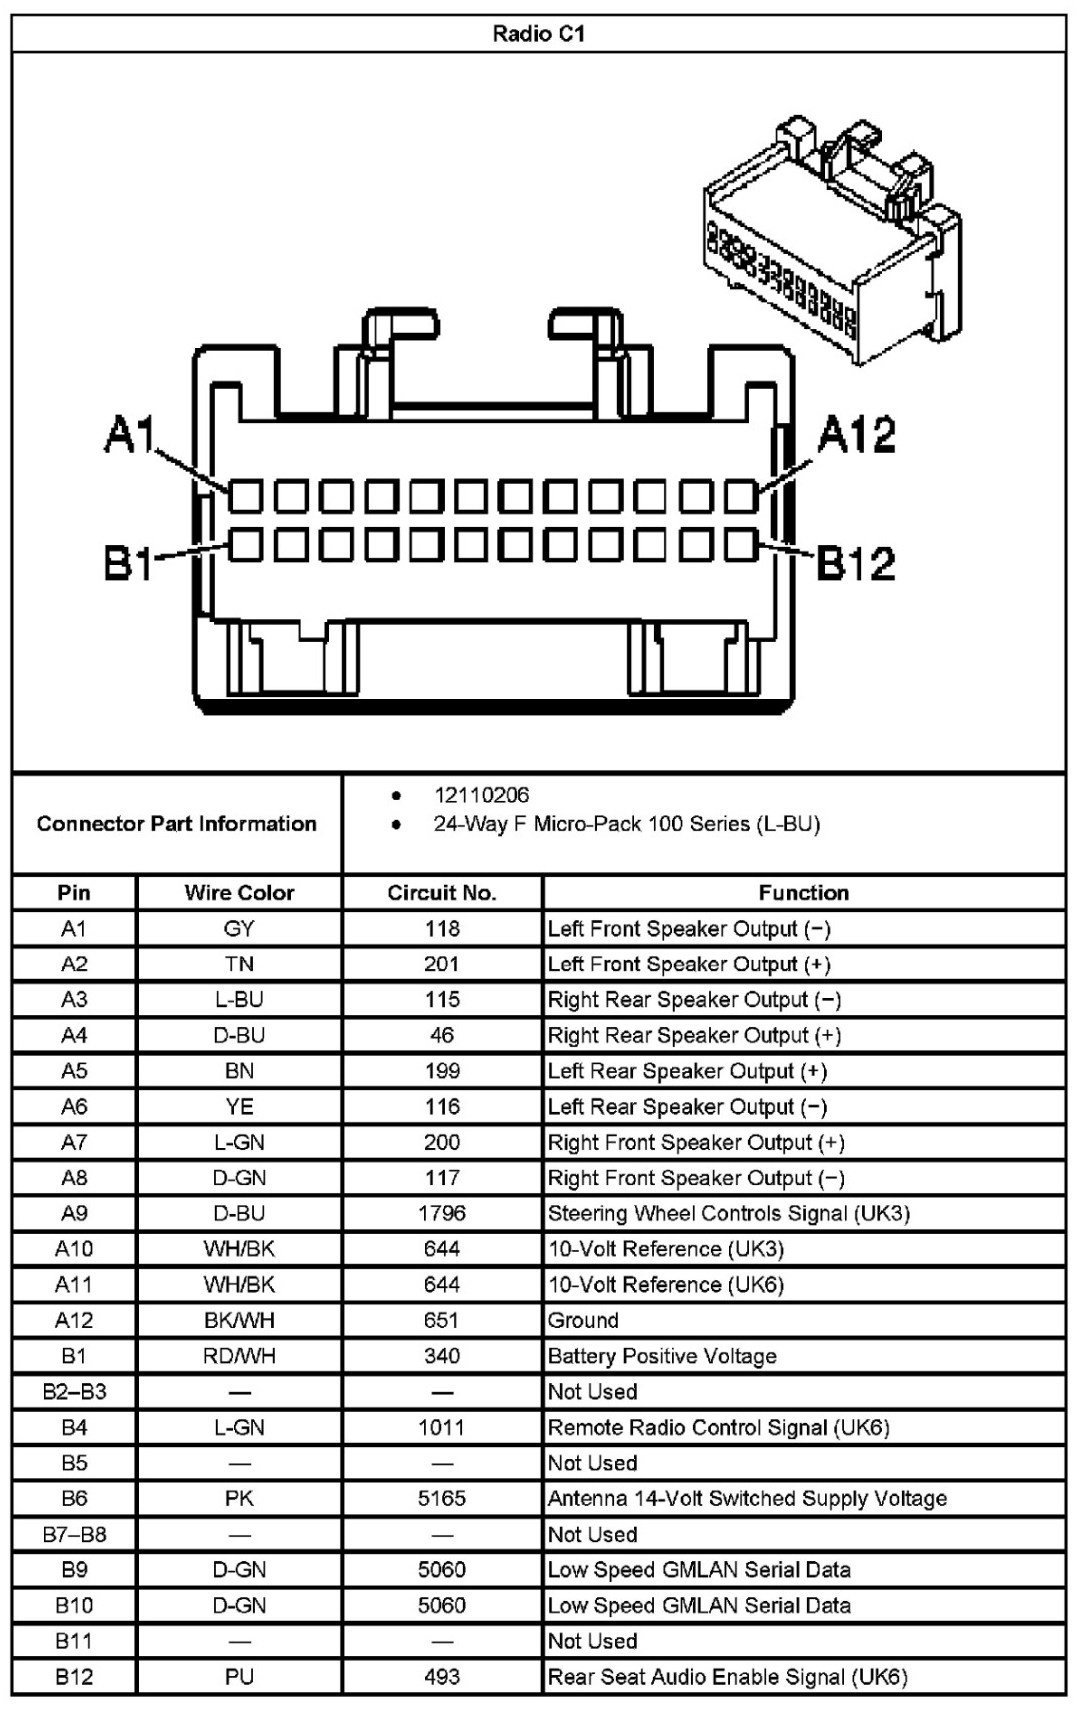 2003 Tahoe Radio Wiring - Wiring Diagram Data - 2001 Chevy Silverado Radio Wiring Diagram